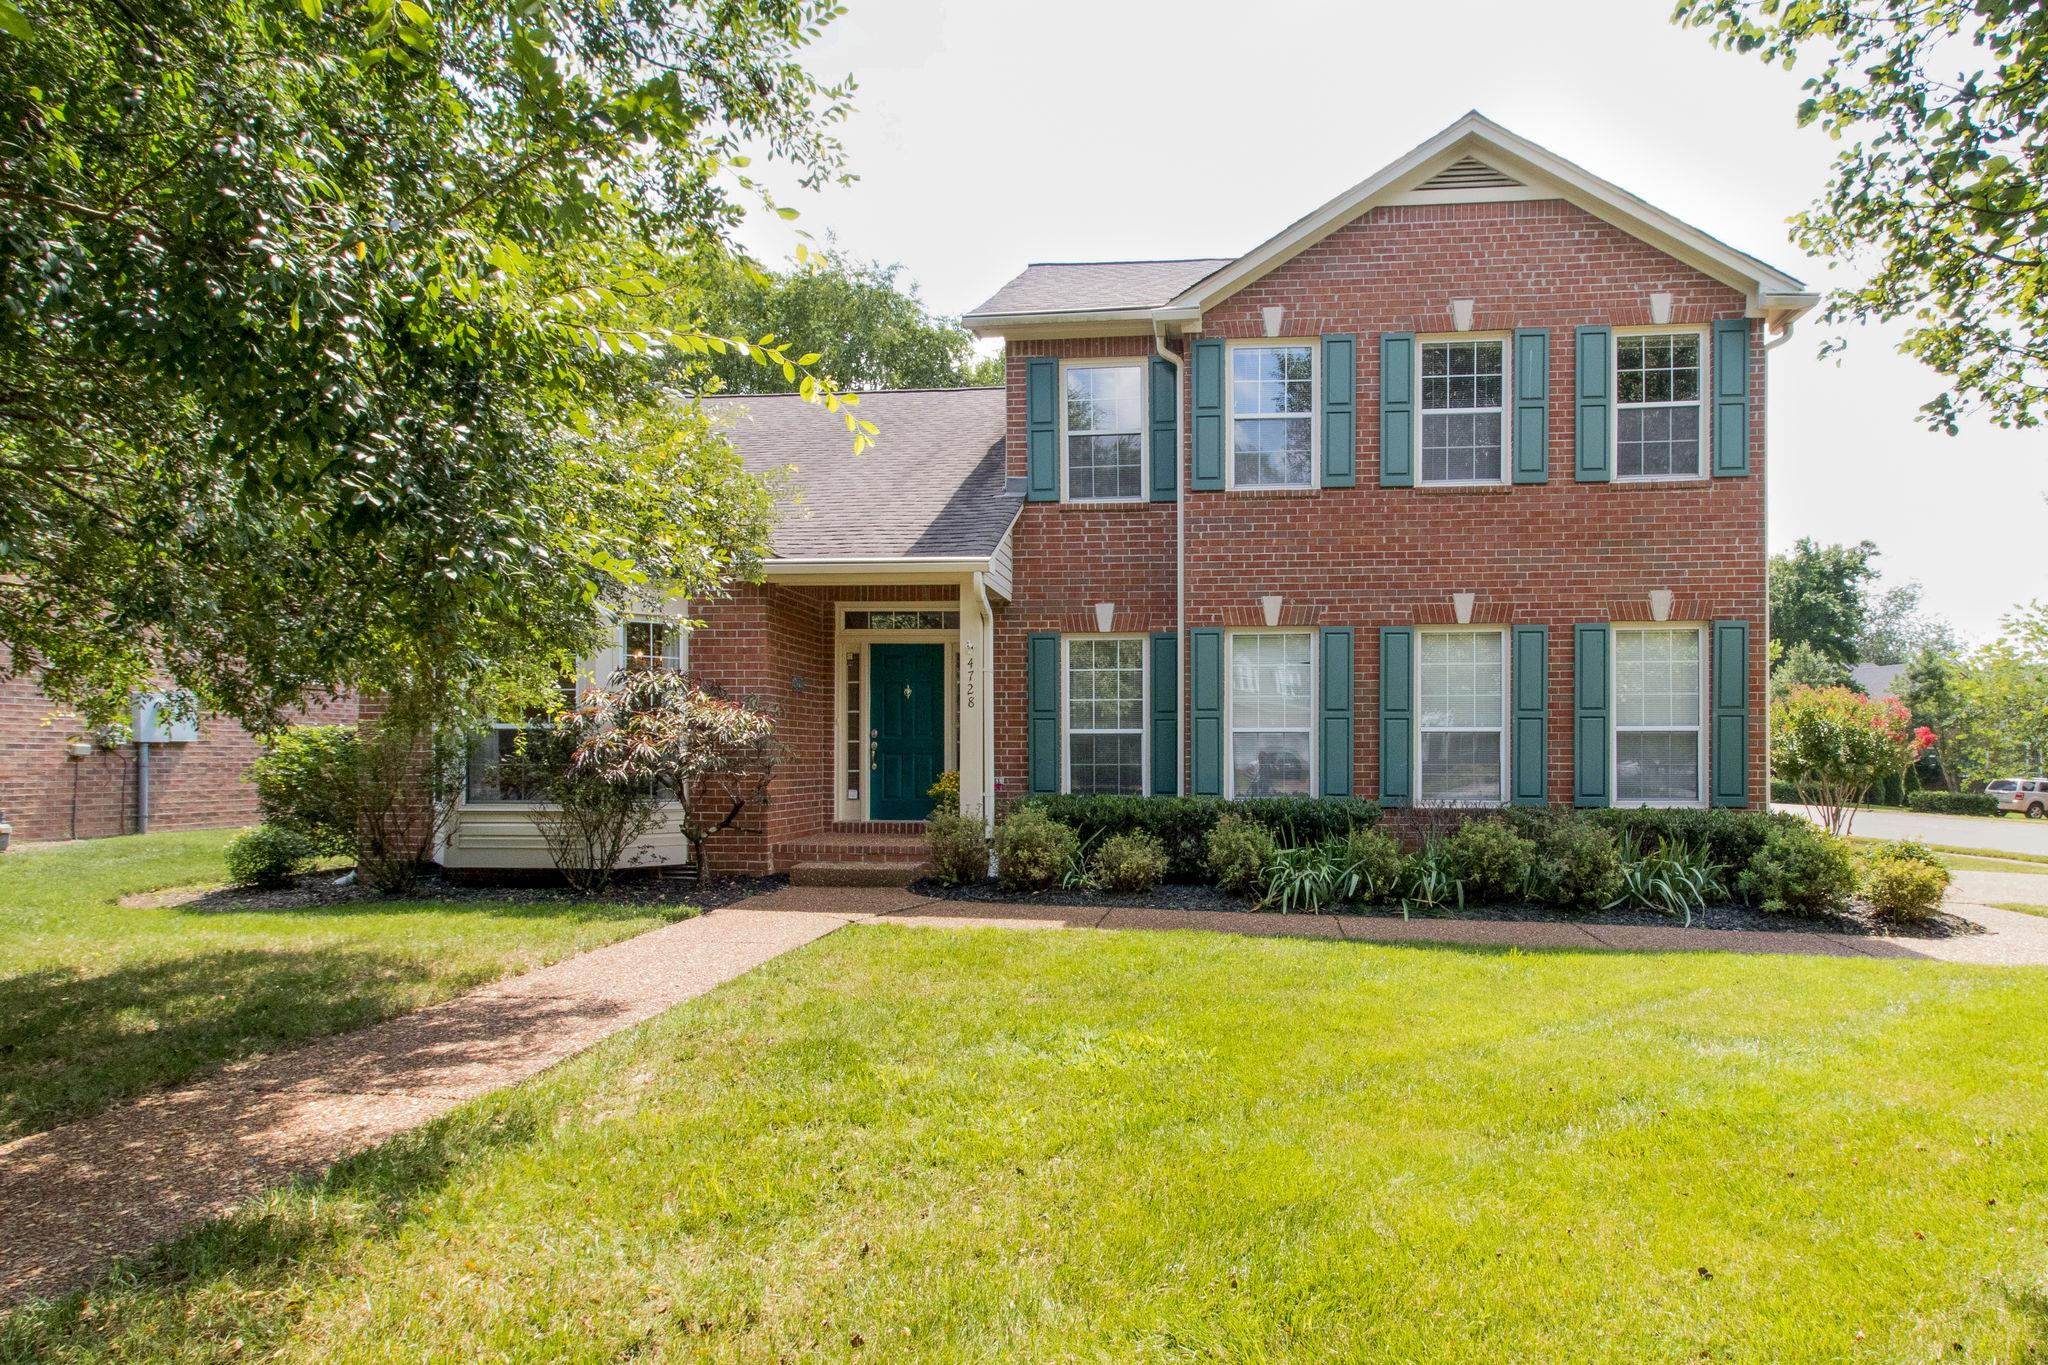 4728 Holly Springs Rd, Bellevue in Davidson County County, TN 37221 Home for Sale